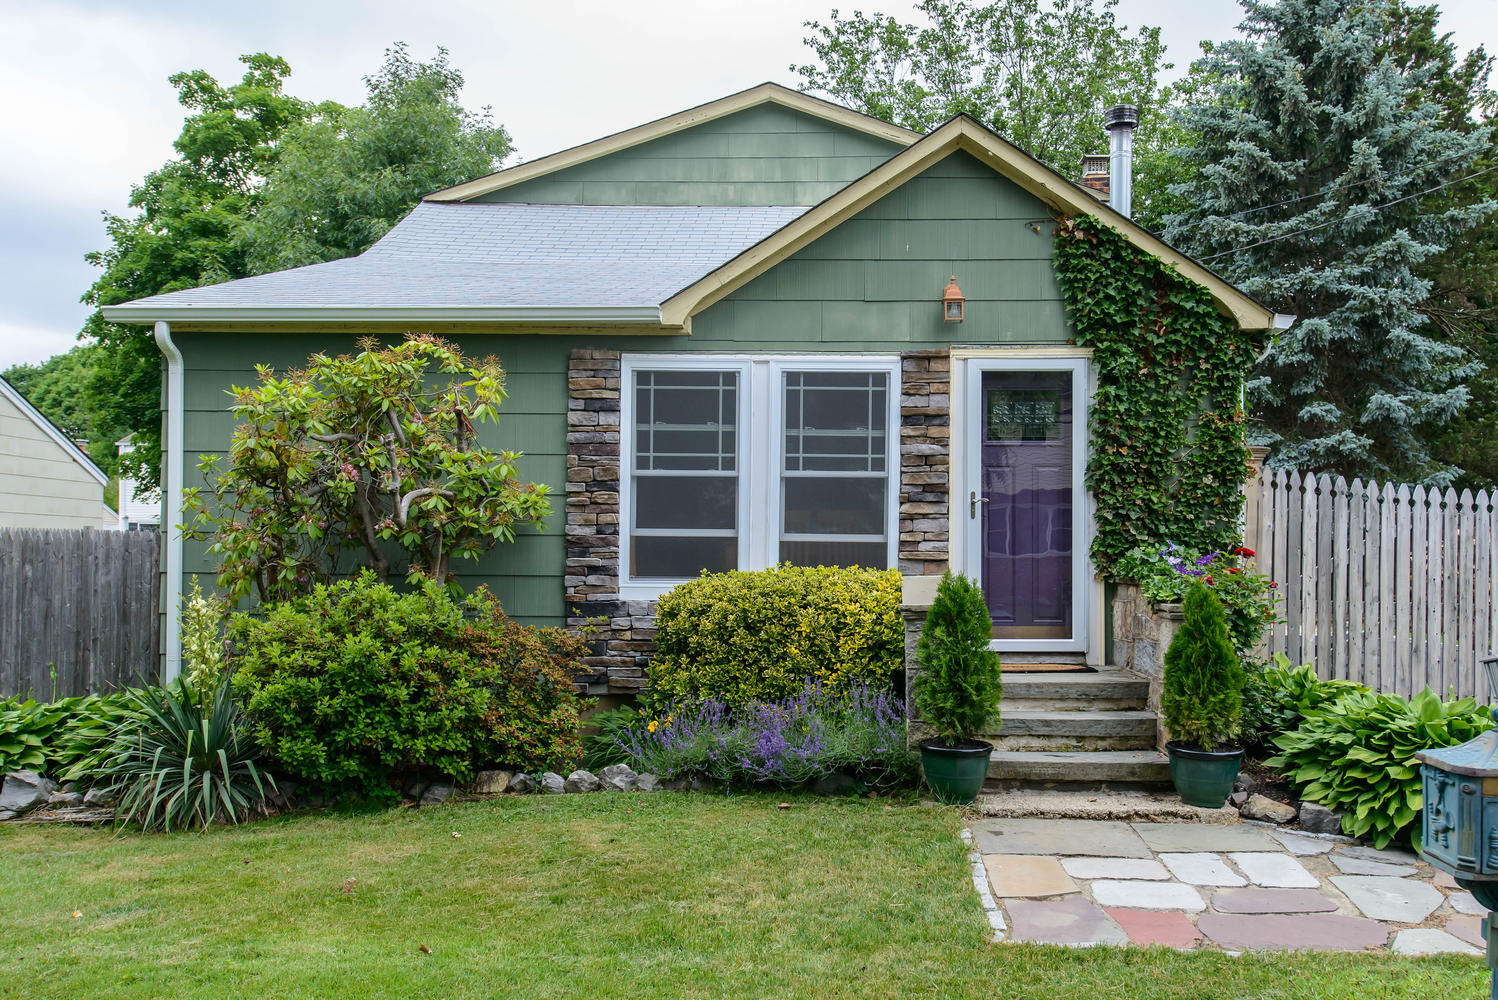 Single Family Home for Sale at Cape 38 Clark St Huntington, New York 11743 United States